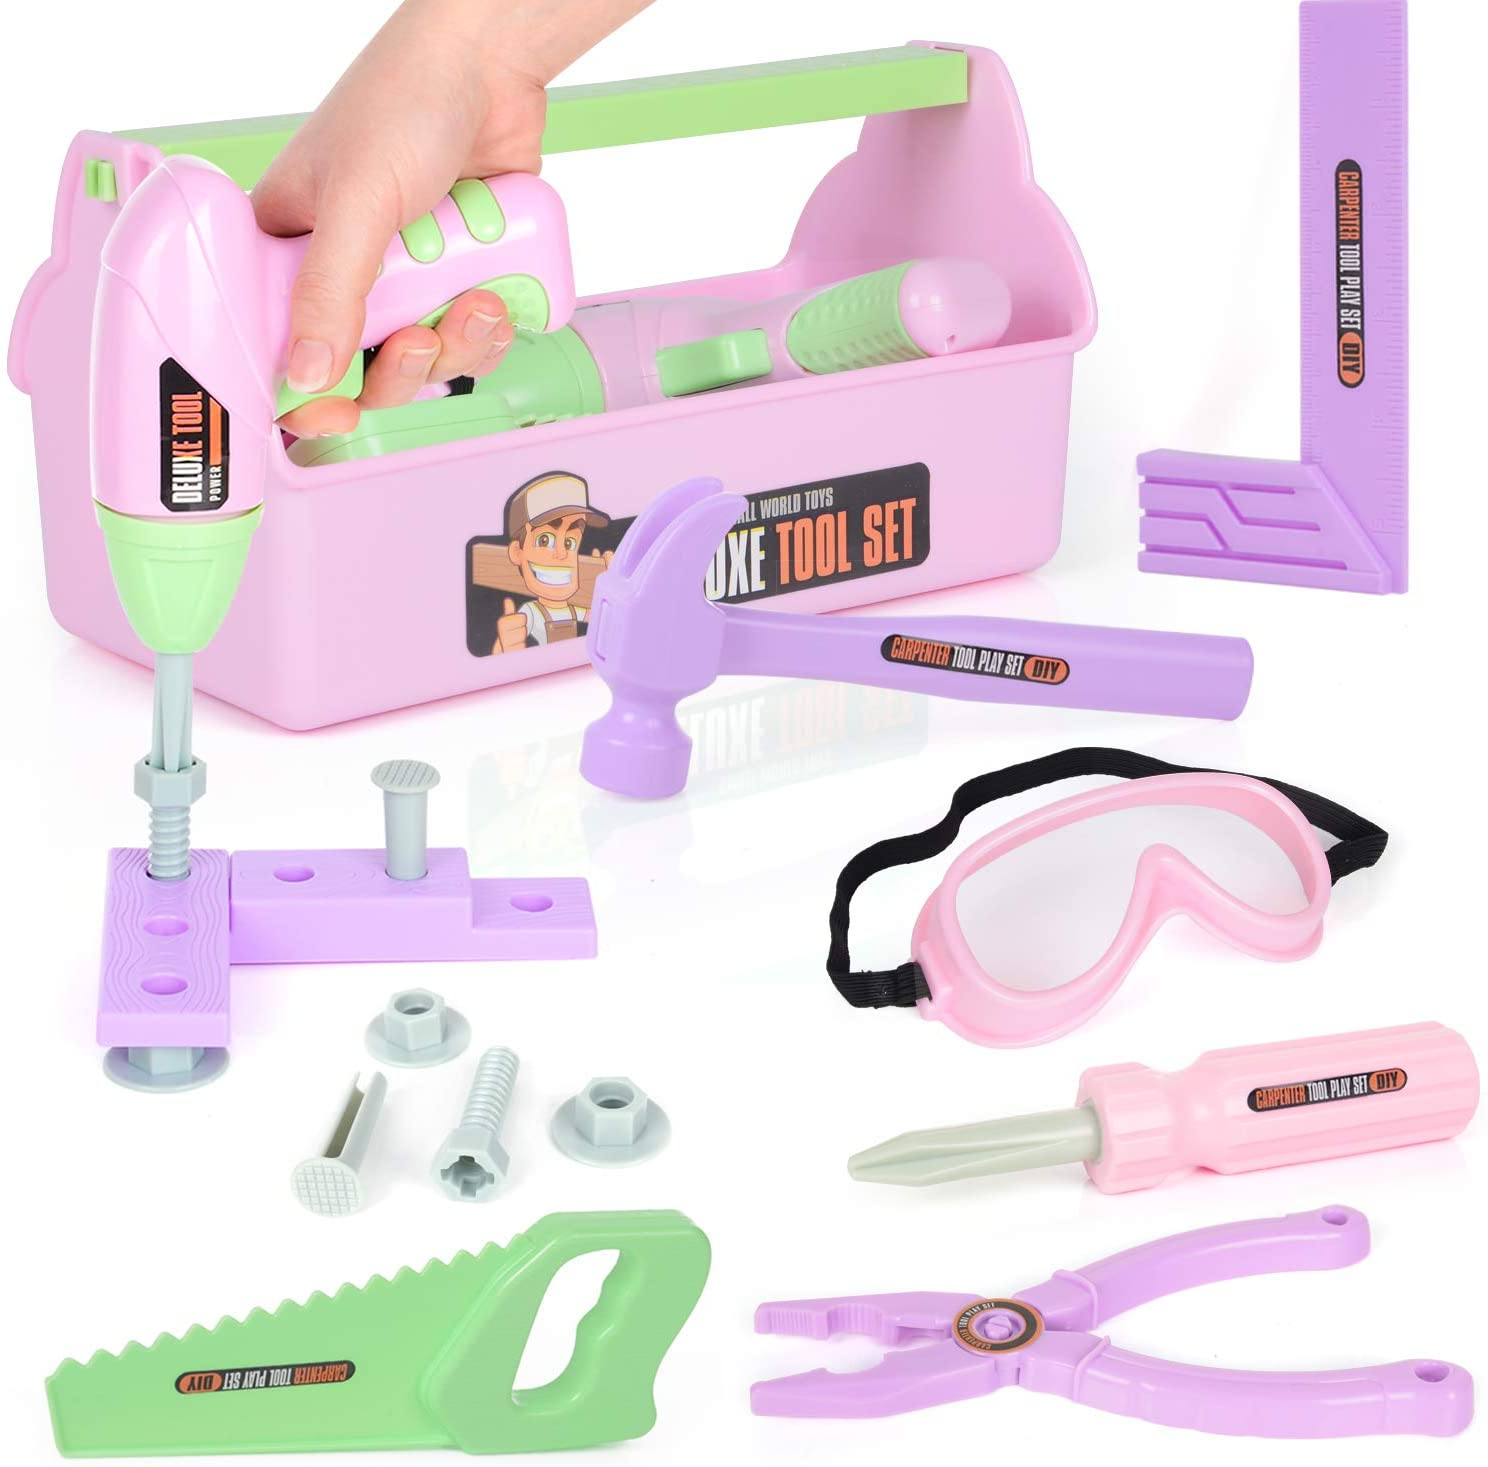 EP EXERCISE N PLAY 18 Pieces Kids Tool Set Pretend Play Construction Tool Accessories with a Tool Box Including Toy Electric Drill (Pink)